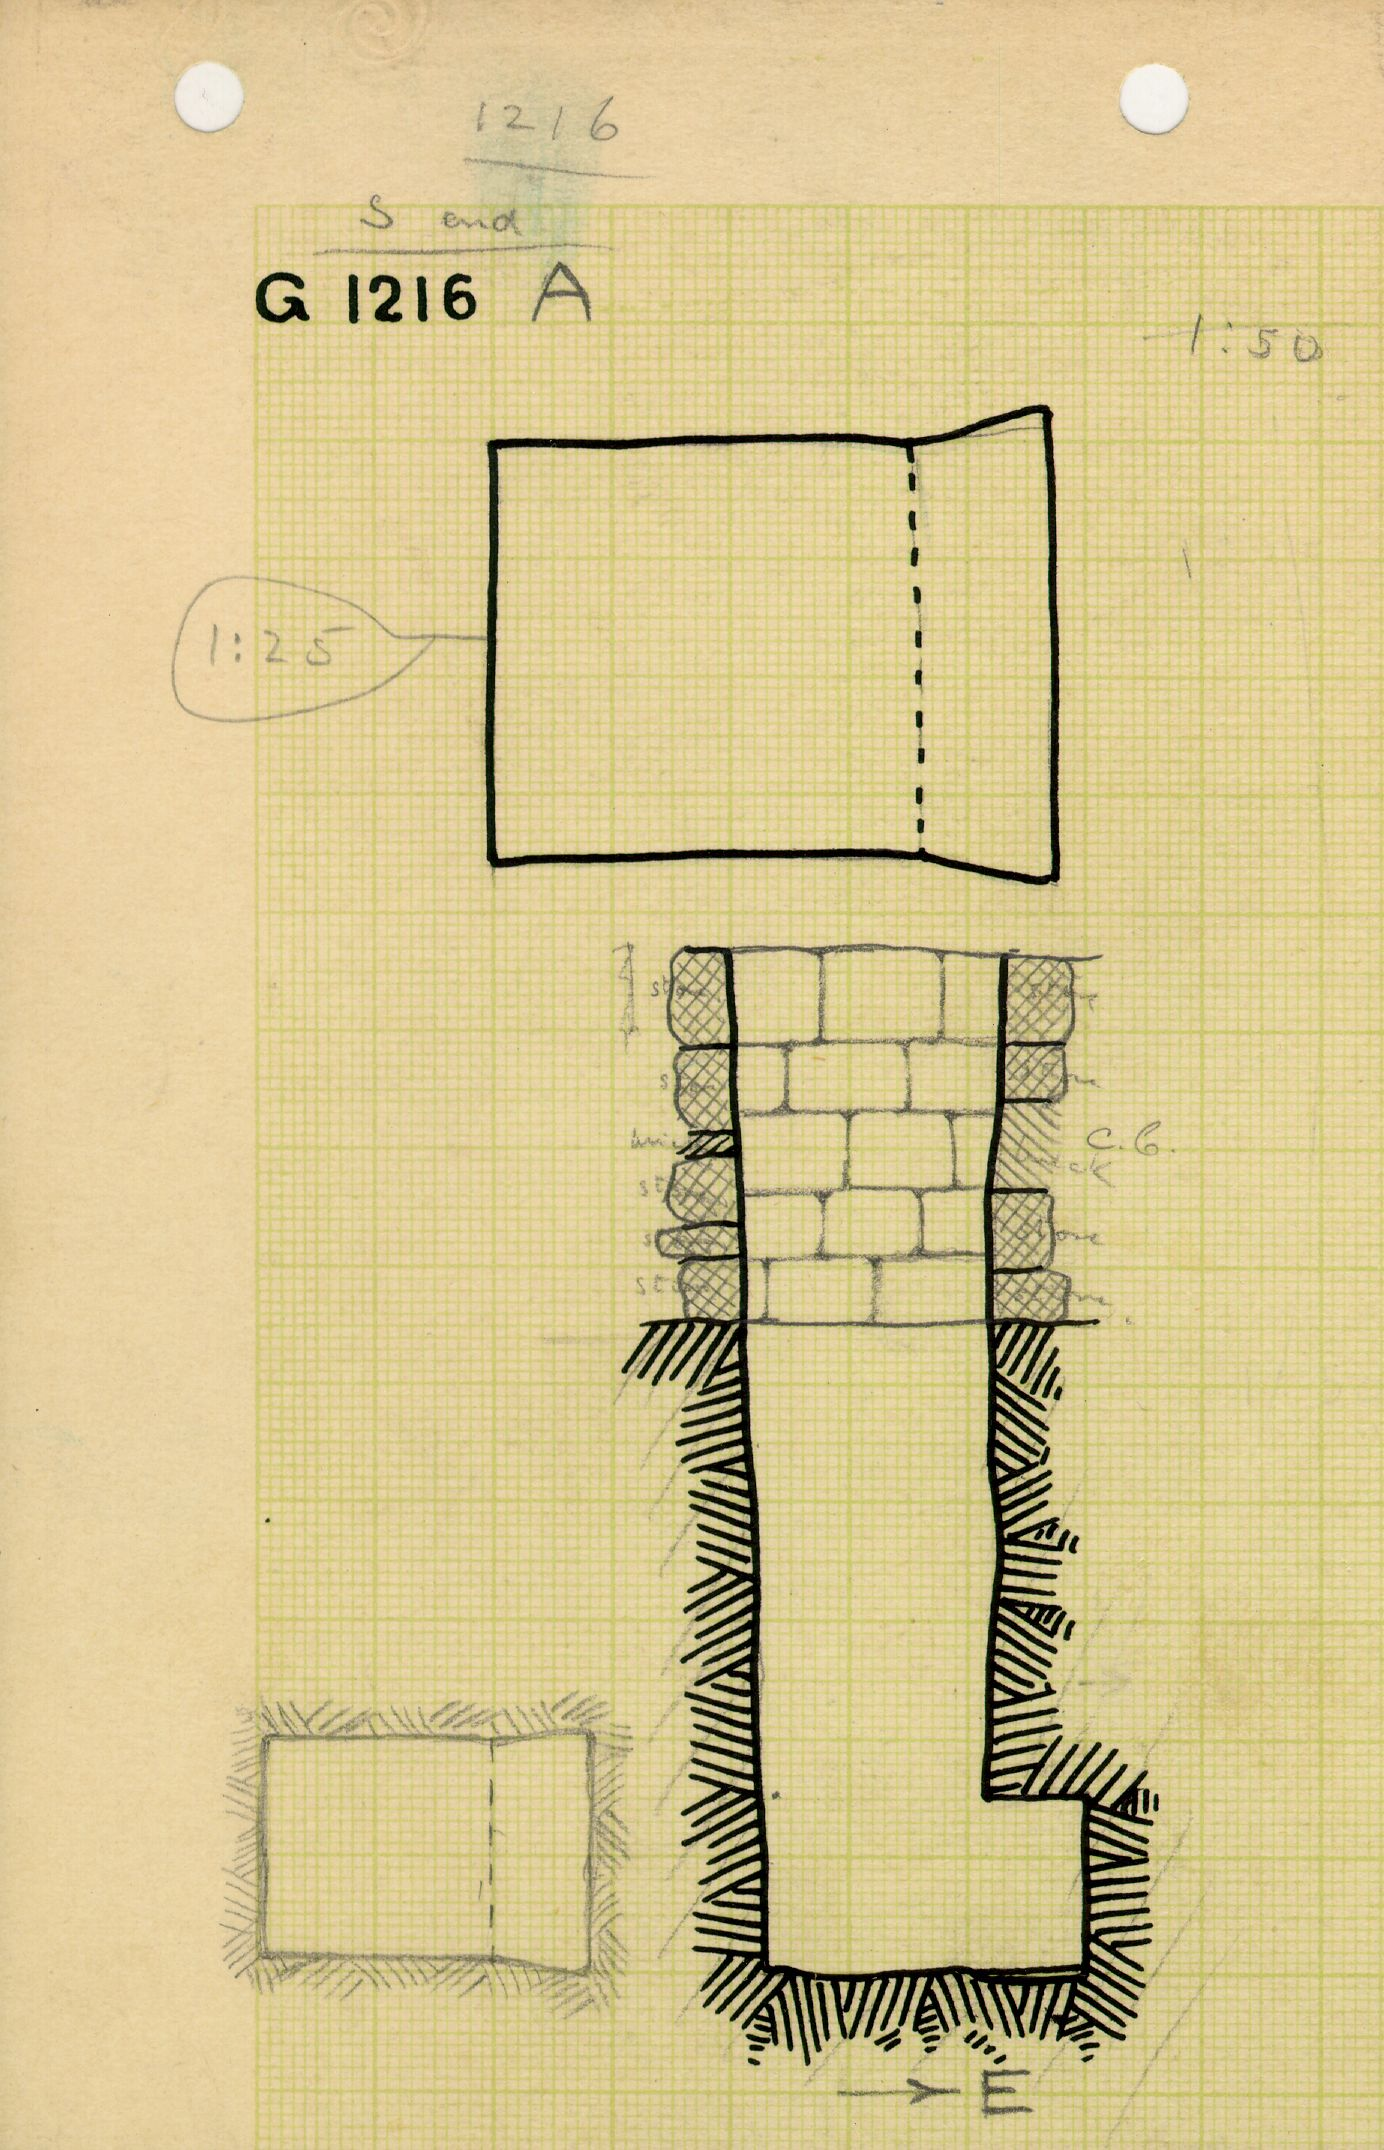 Maps and plans: G 1216, Shaft A